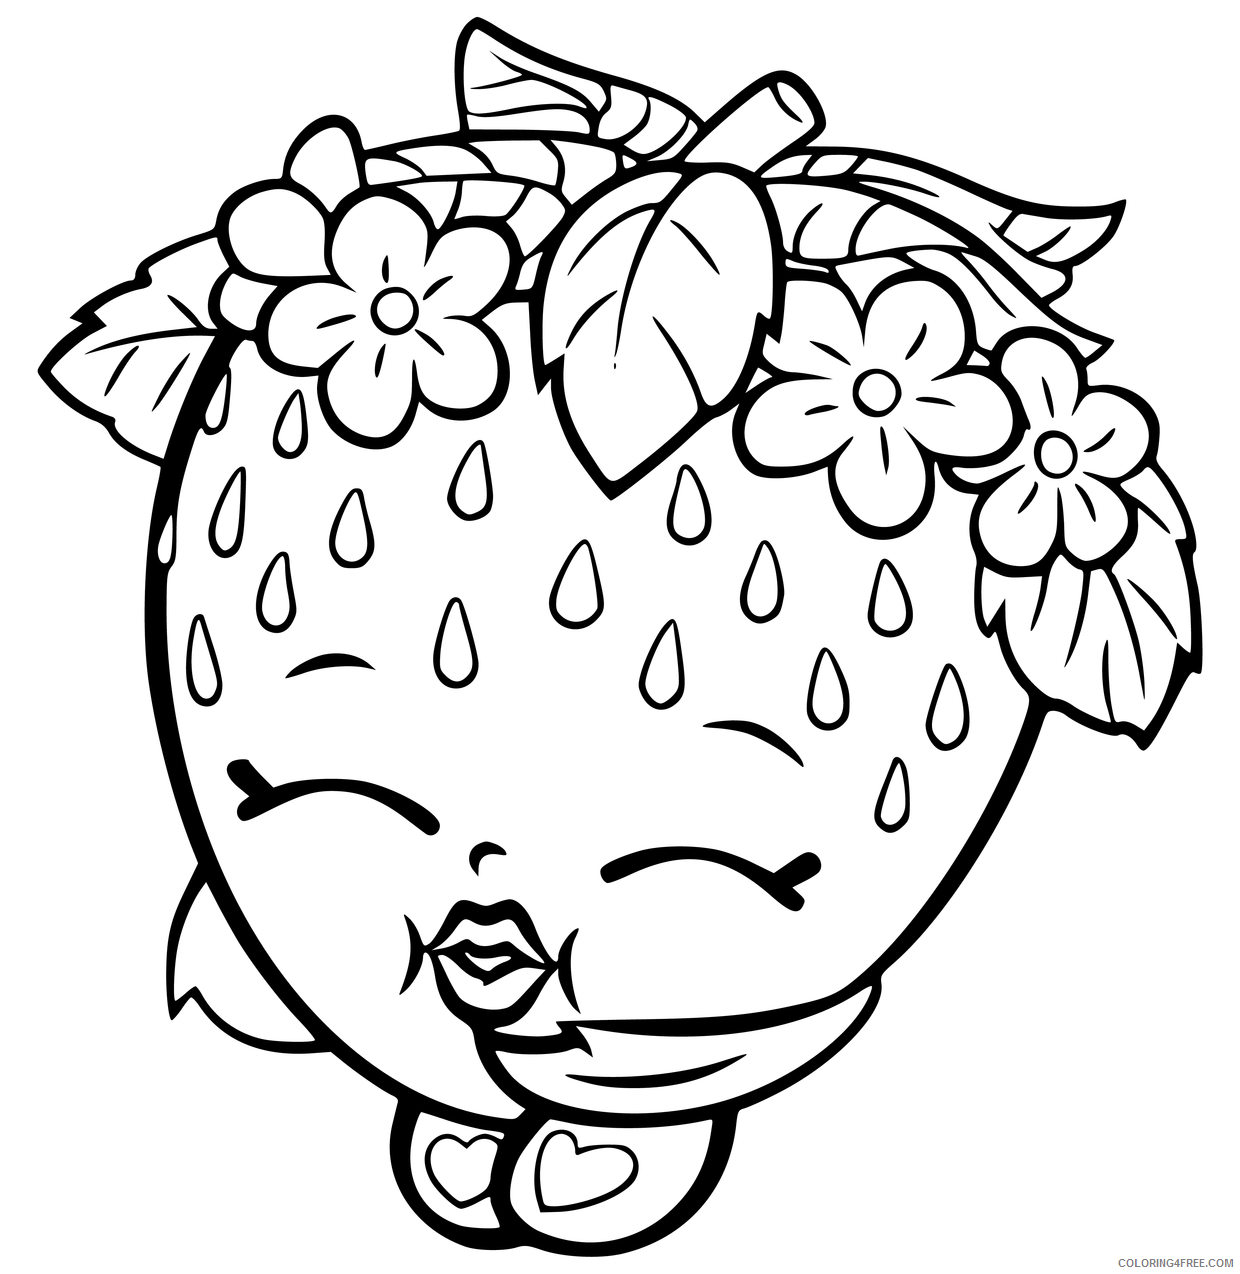 Shopkins Coloring Pages for Girls Shopkins Images Printable 2021 1301  Coloring4free - Coloring4Free.com